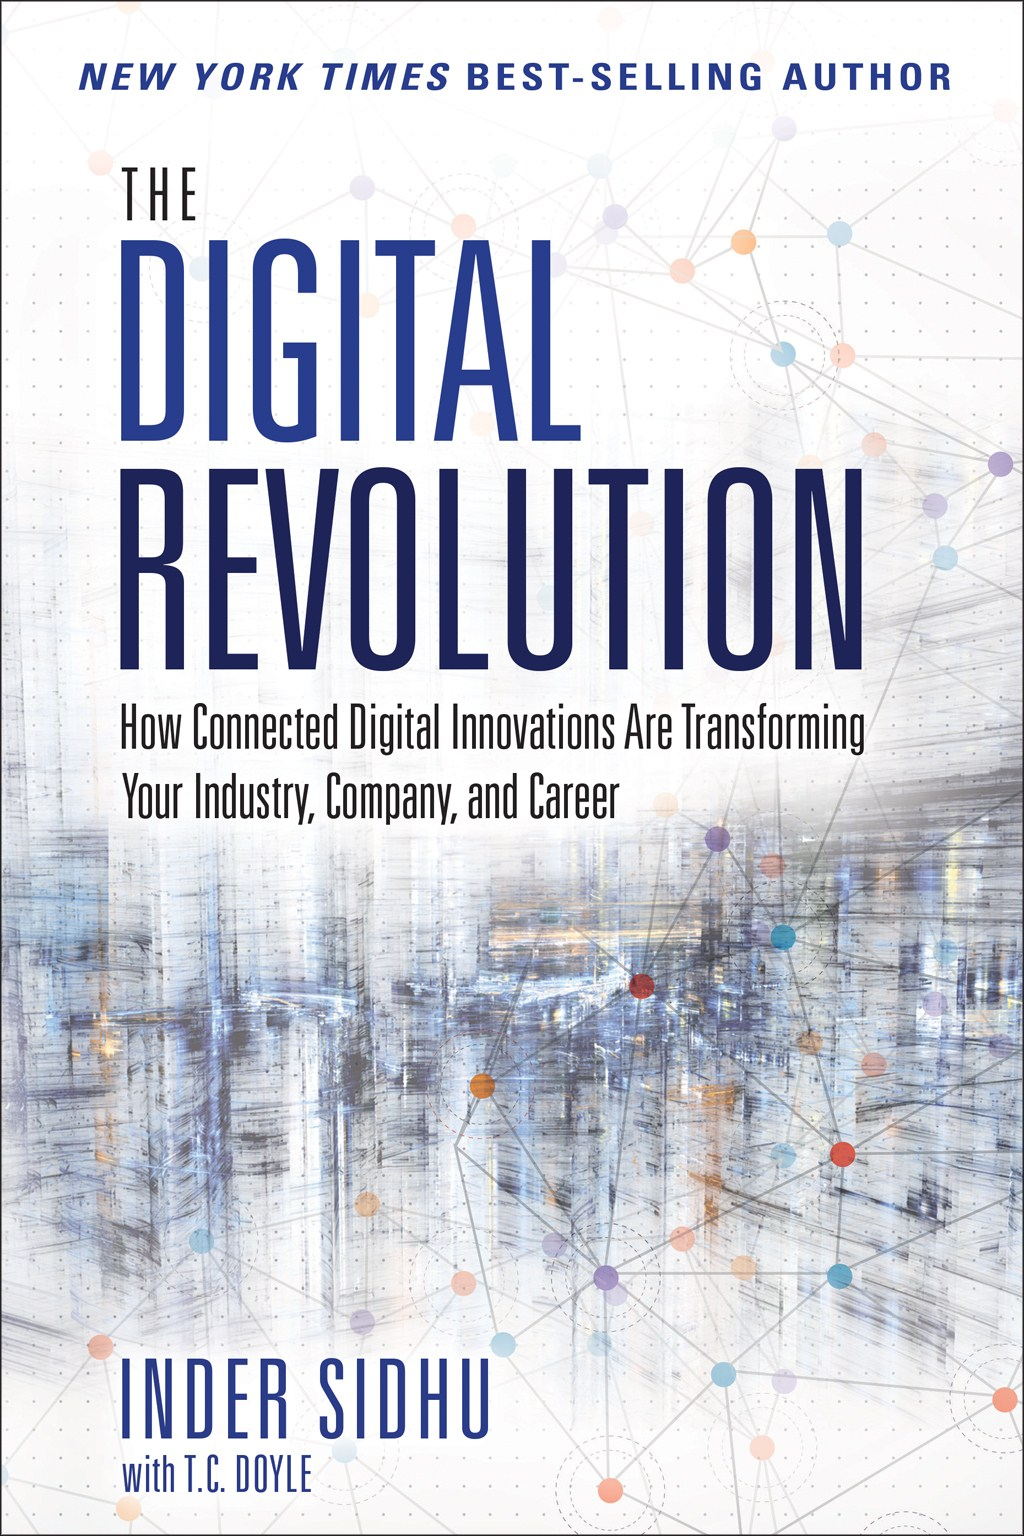 Digital Revolution, The: How Connected Digital Innovations Are Transforming Your Industry, Company & Career